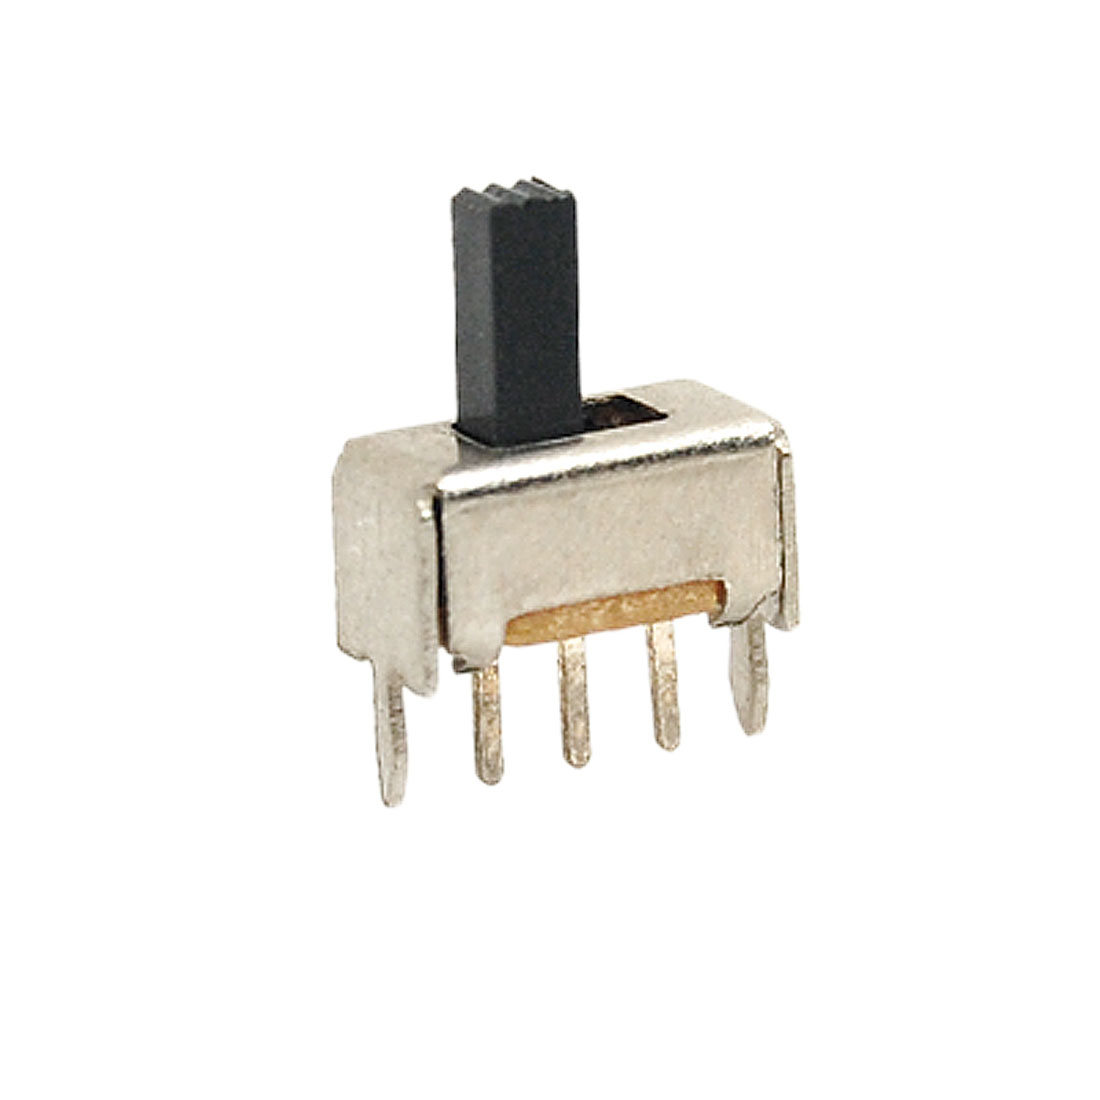 10x 5.3mm High Knob 3 Pin 2 Position 1P2T SPDT Vertical Slide Switch 0.3A 50V DC